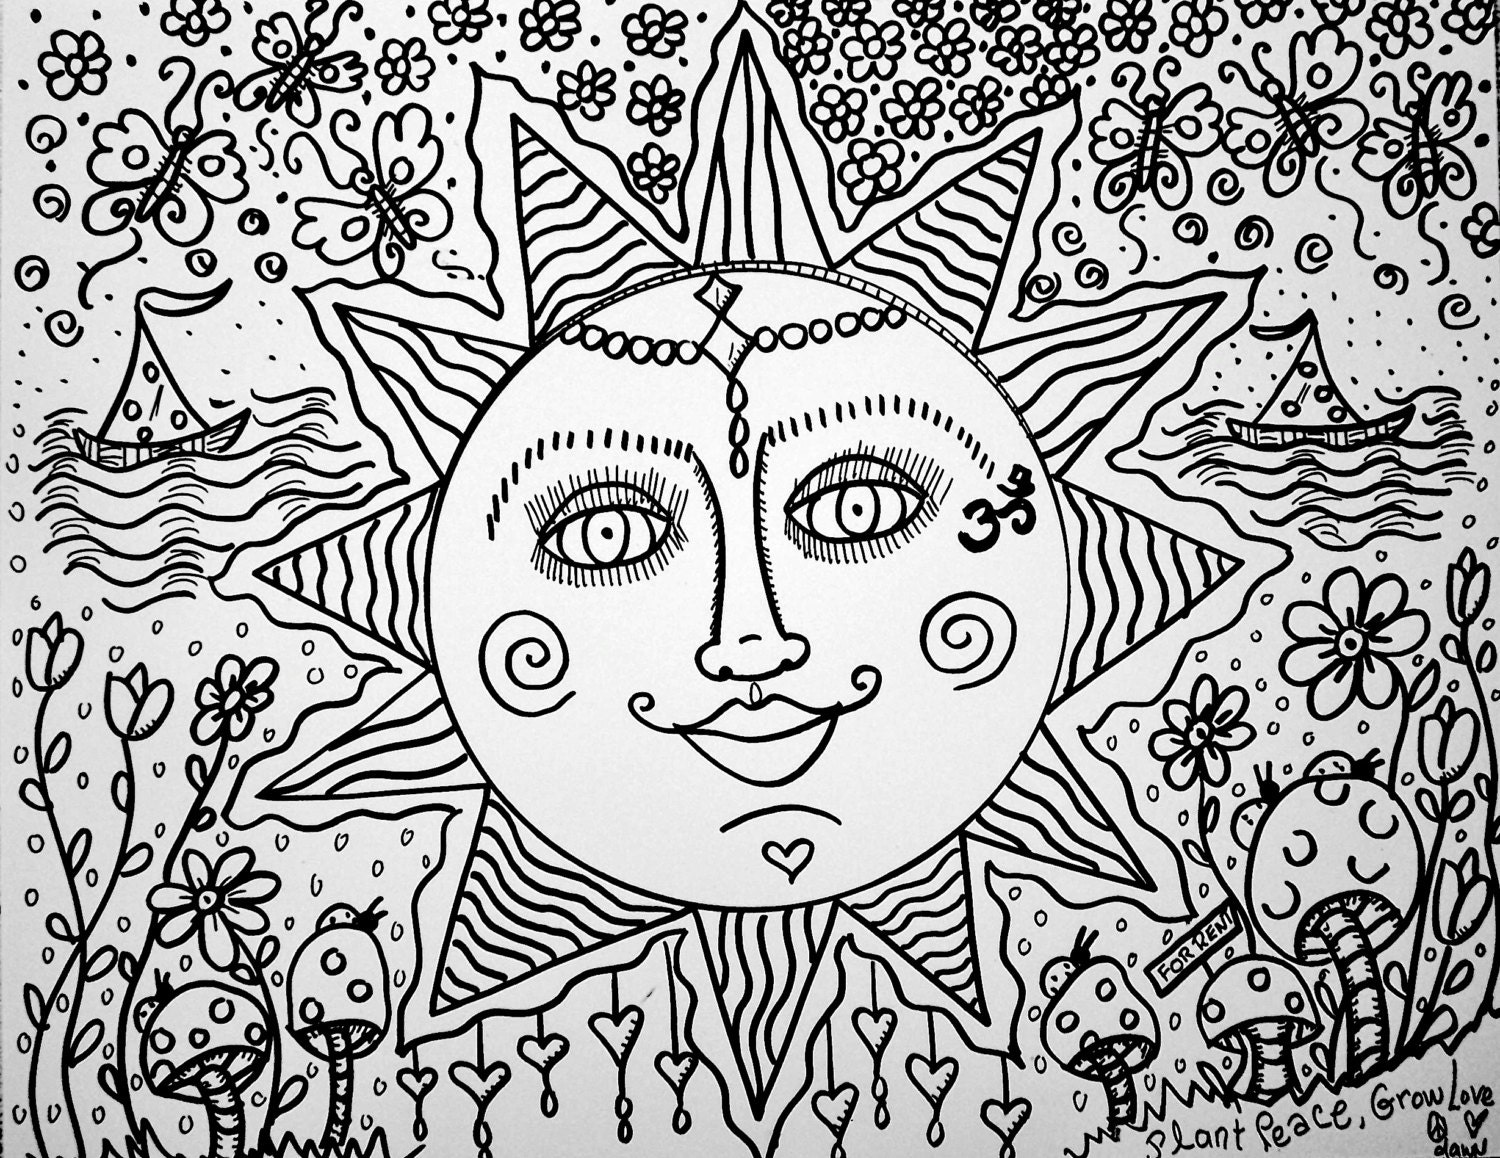 hippie coloring book pages sweet summer days a color yourself hippie art poster